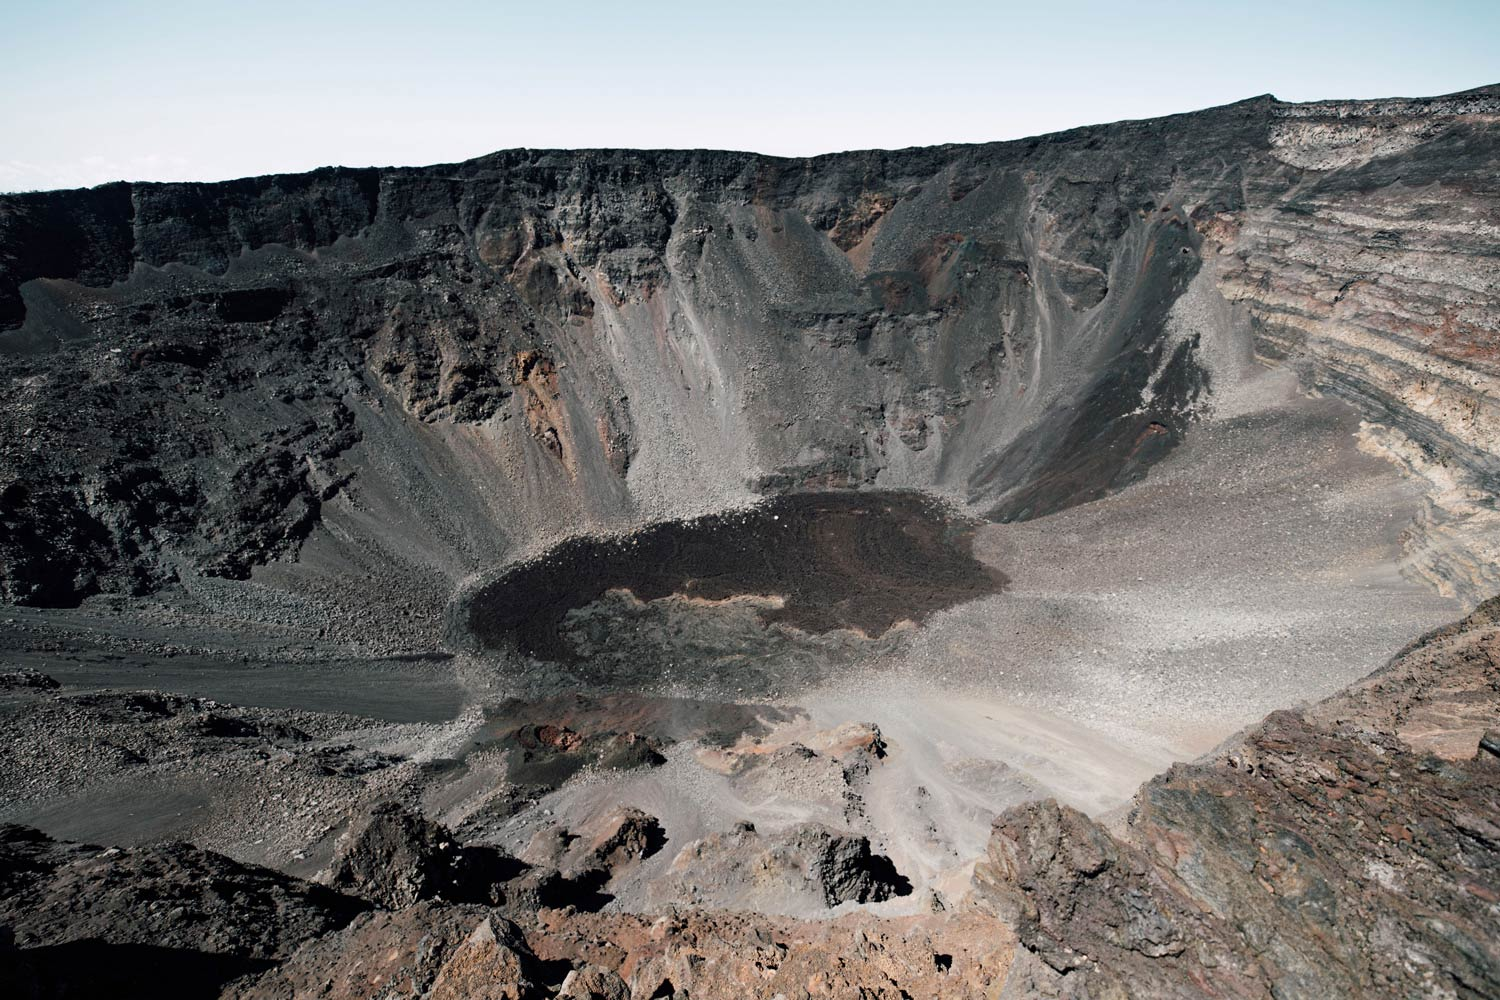 photo du cratère Piton de la fournaise